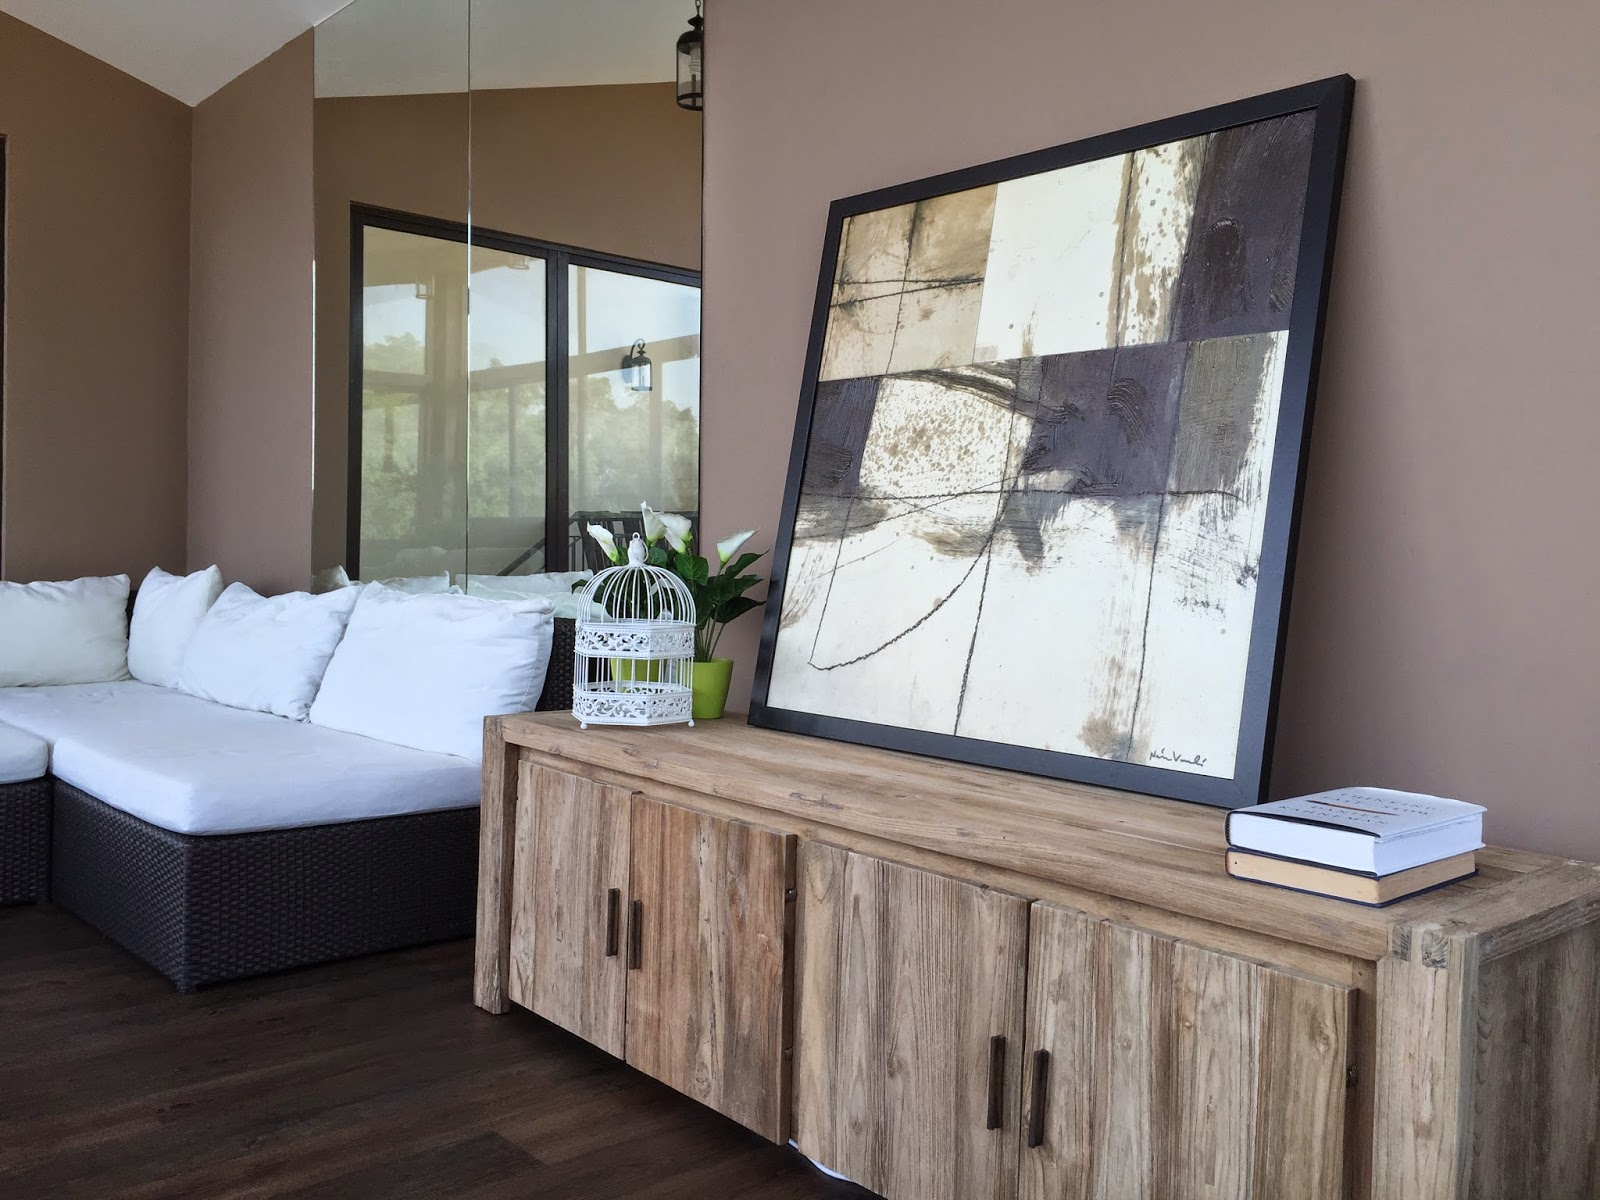 comment teindre un meuble en bois forumbrico. Black Bedroom Furniture Sets. Home Design Ideas